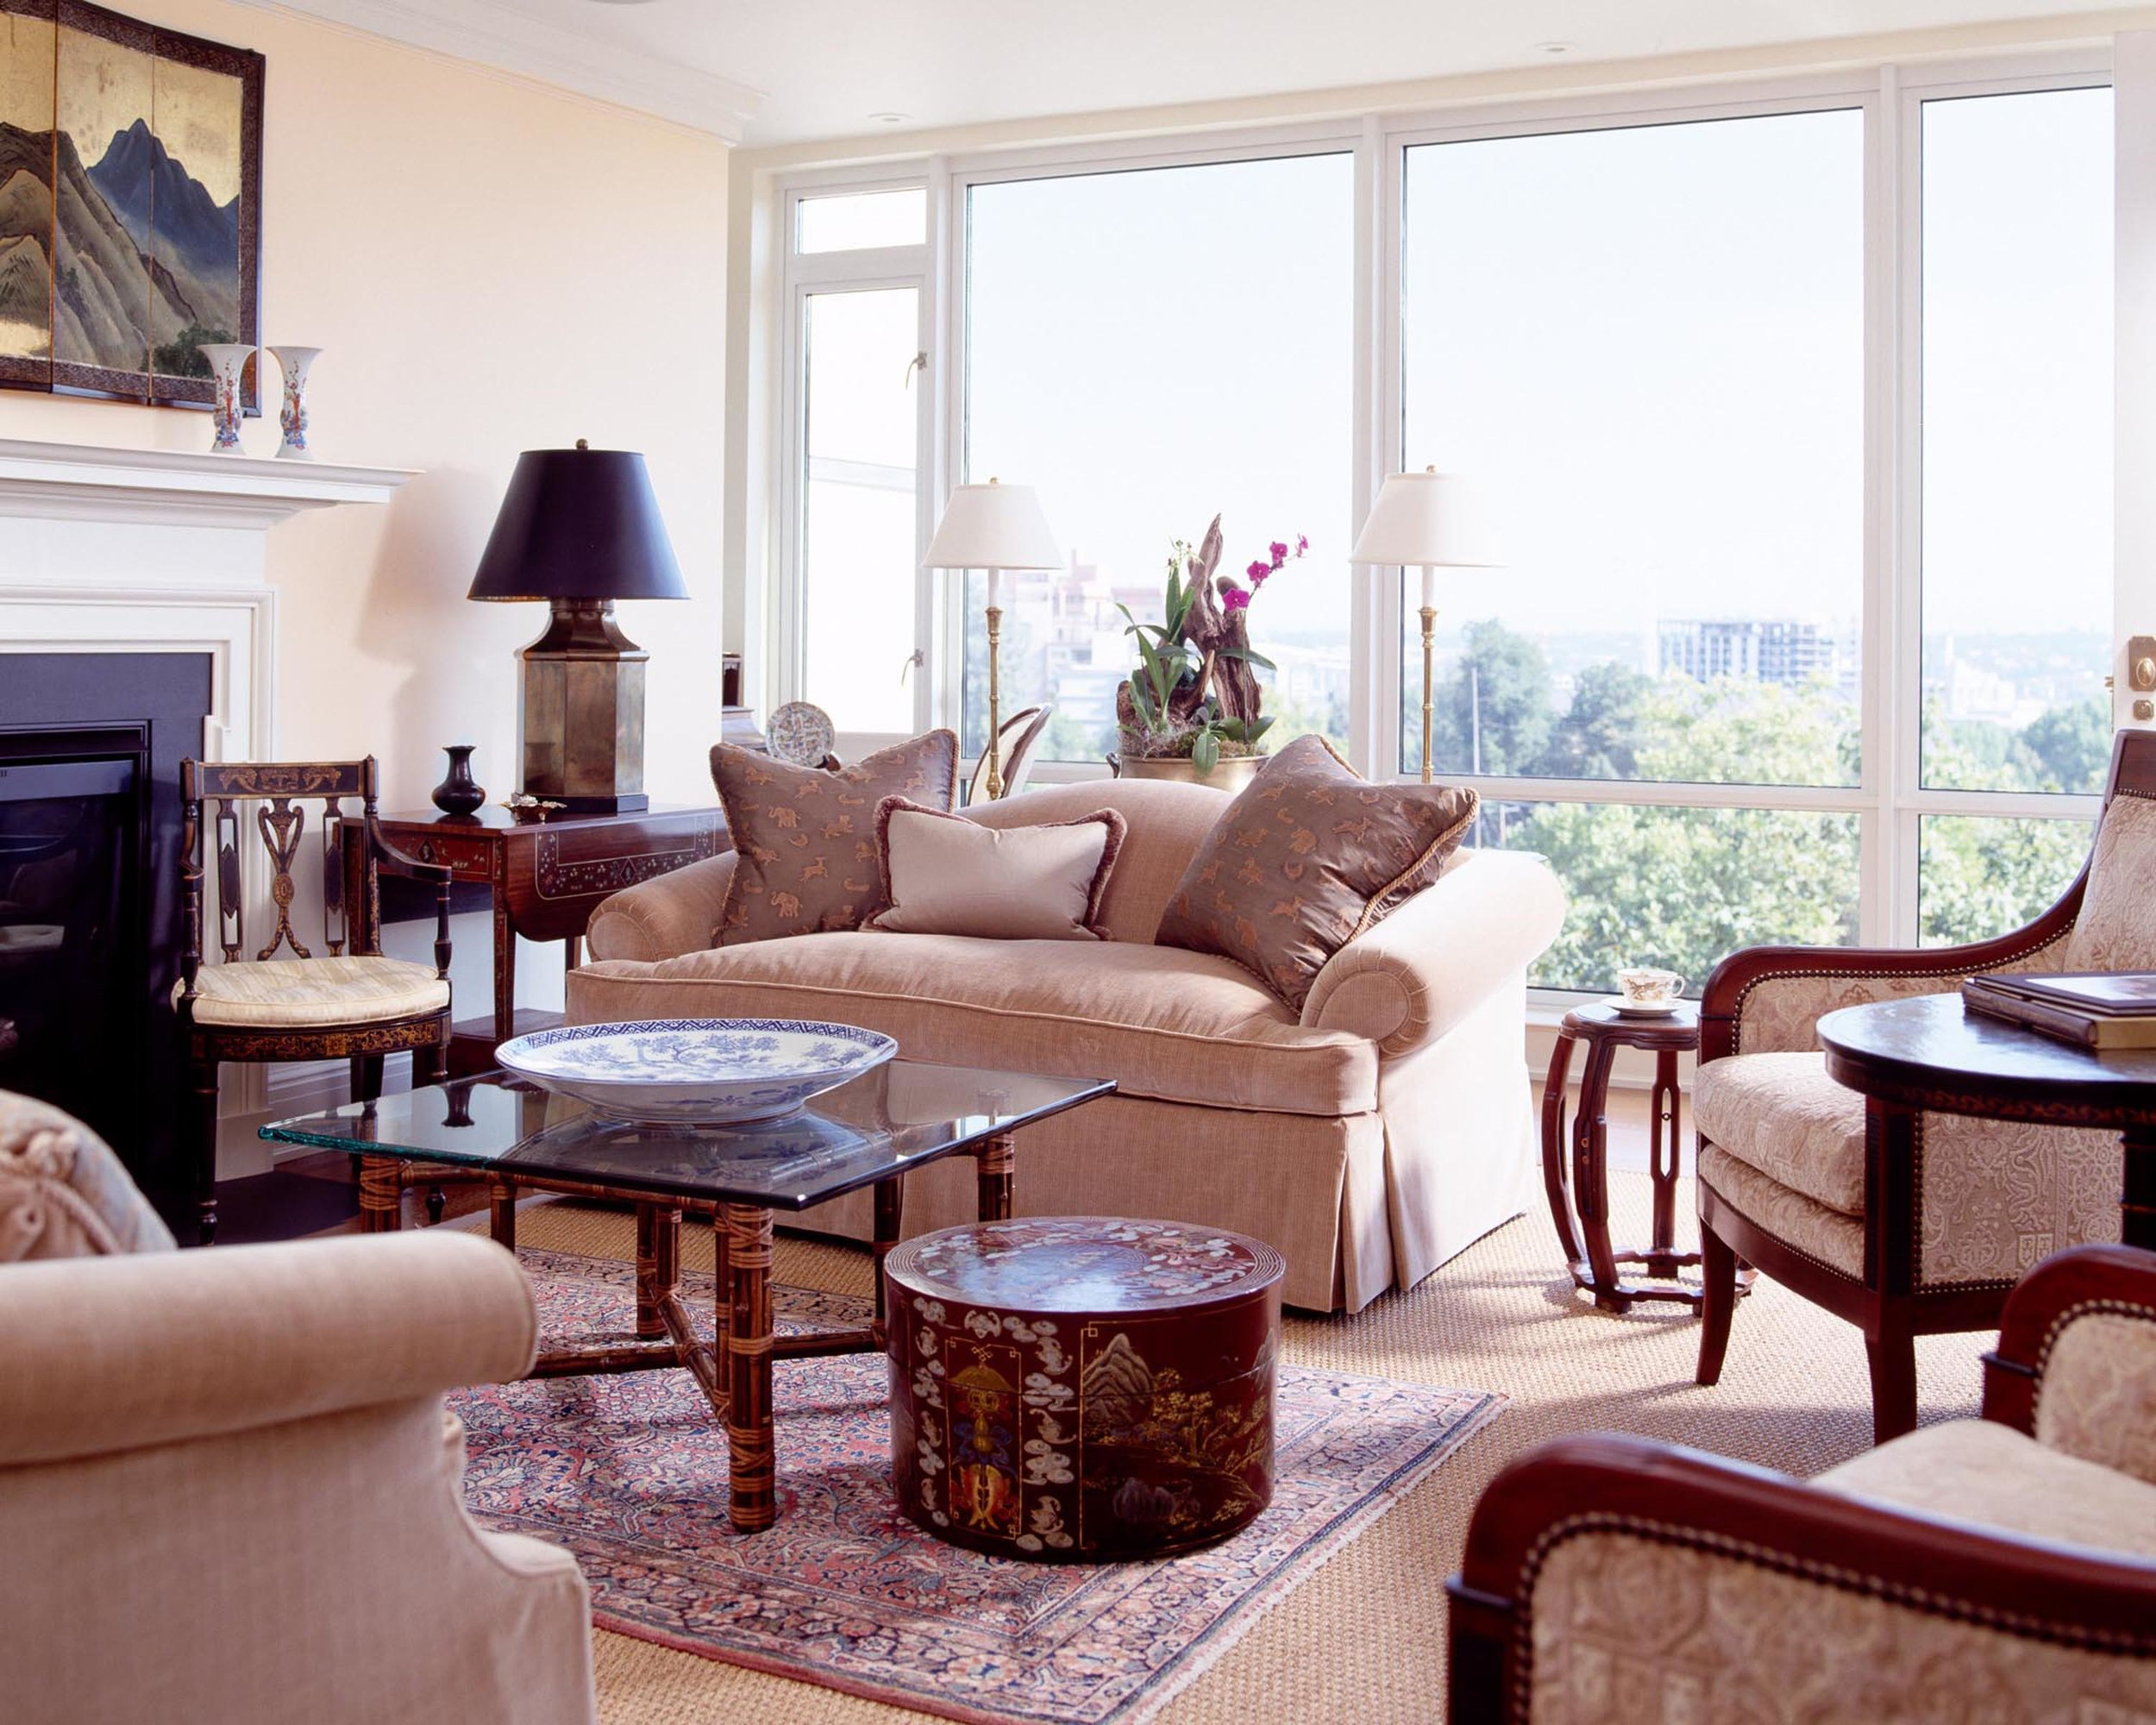 Living room with sofa, armchairs, glass center table, fireplace and a large window